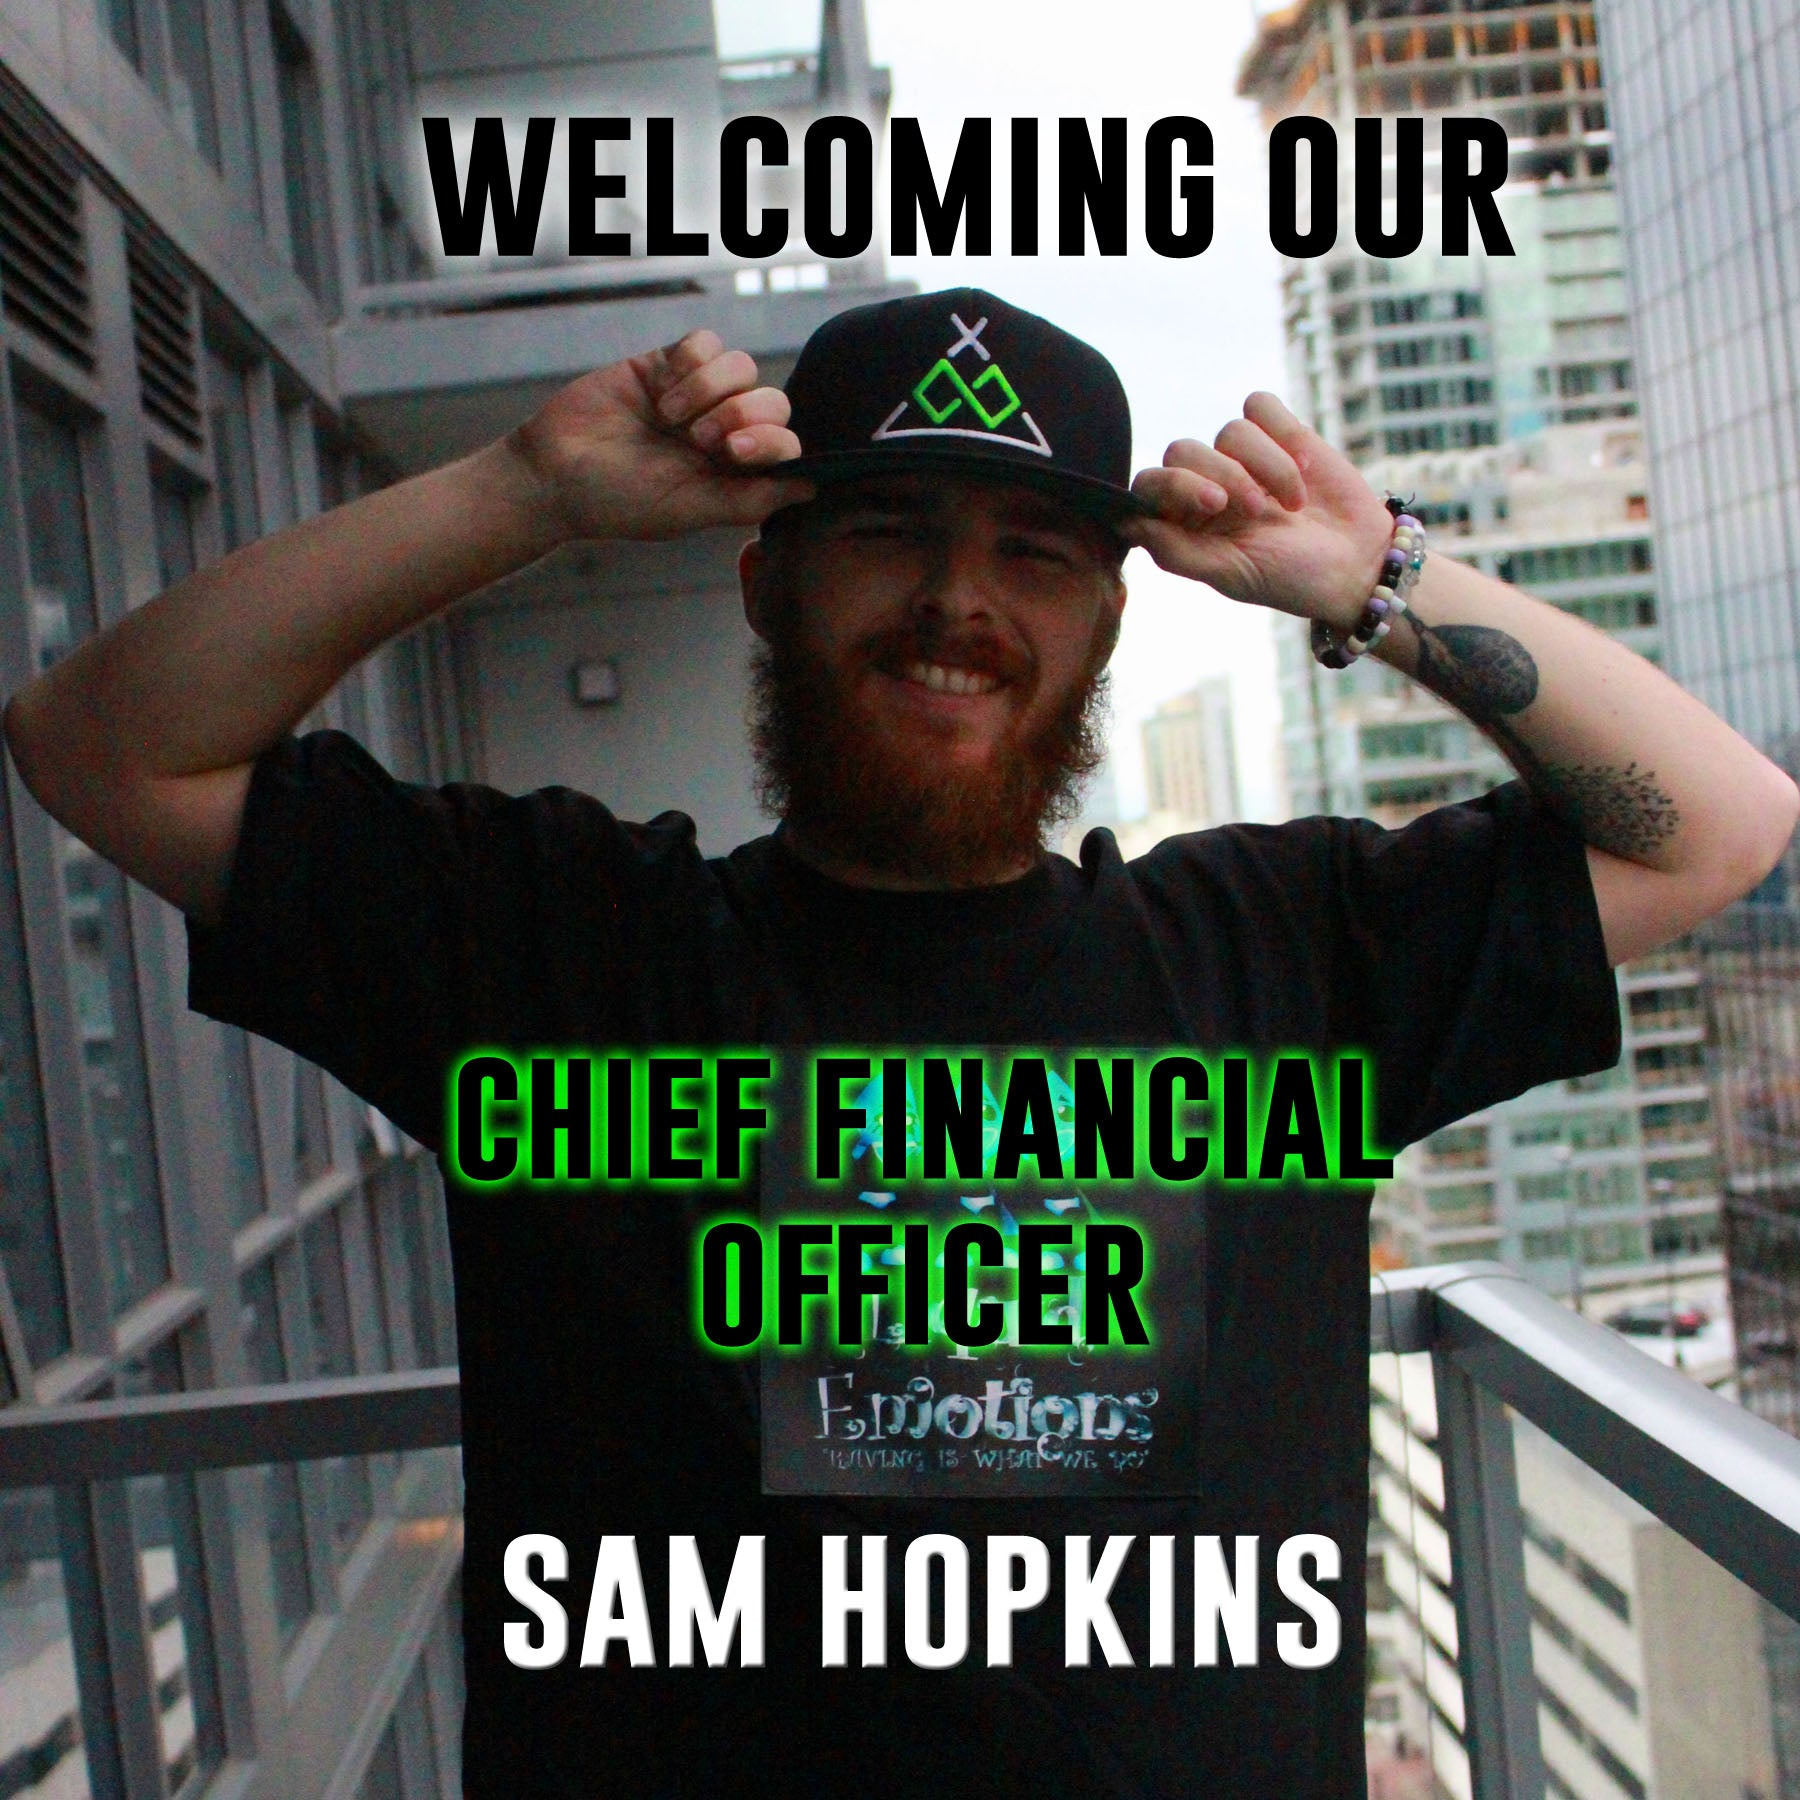 Sam Hopkins: Our Chief Financial Officer